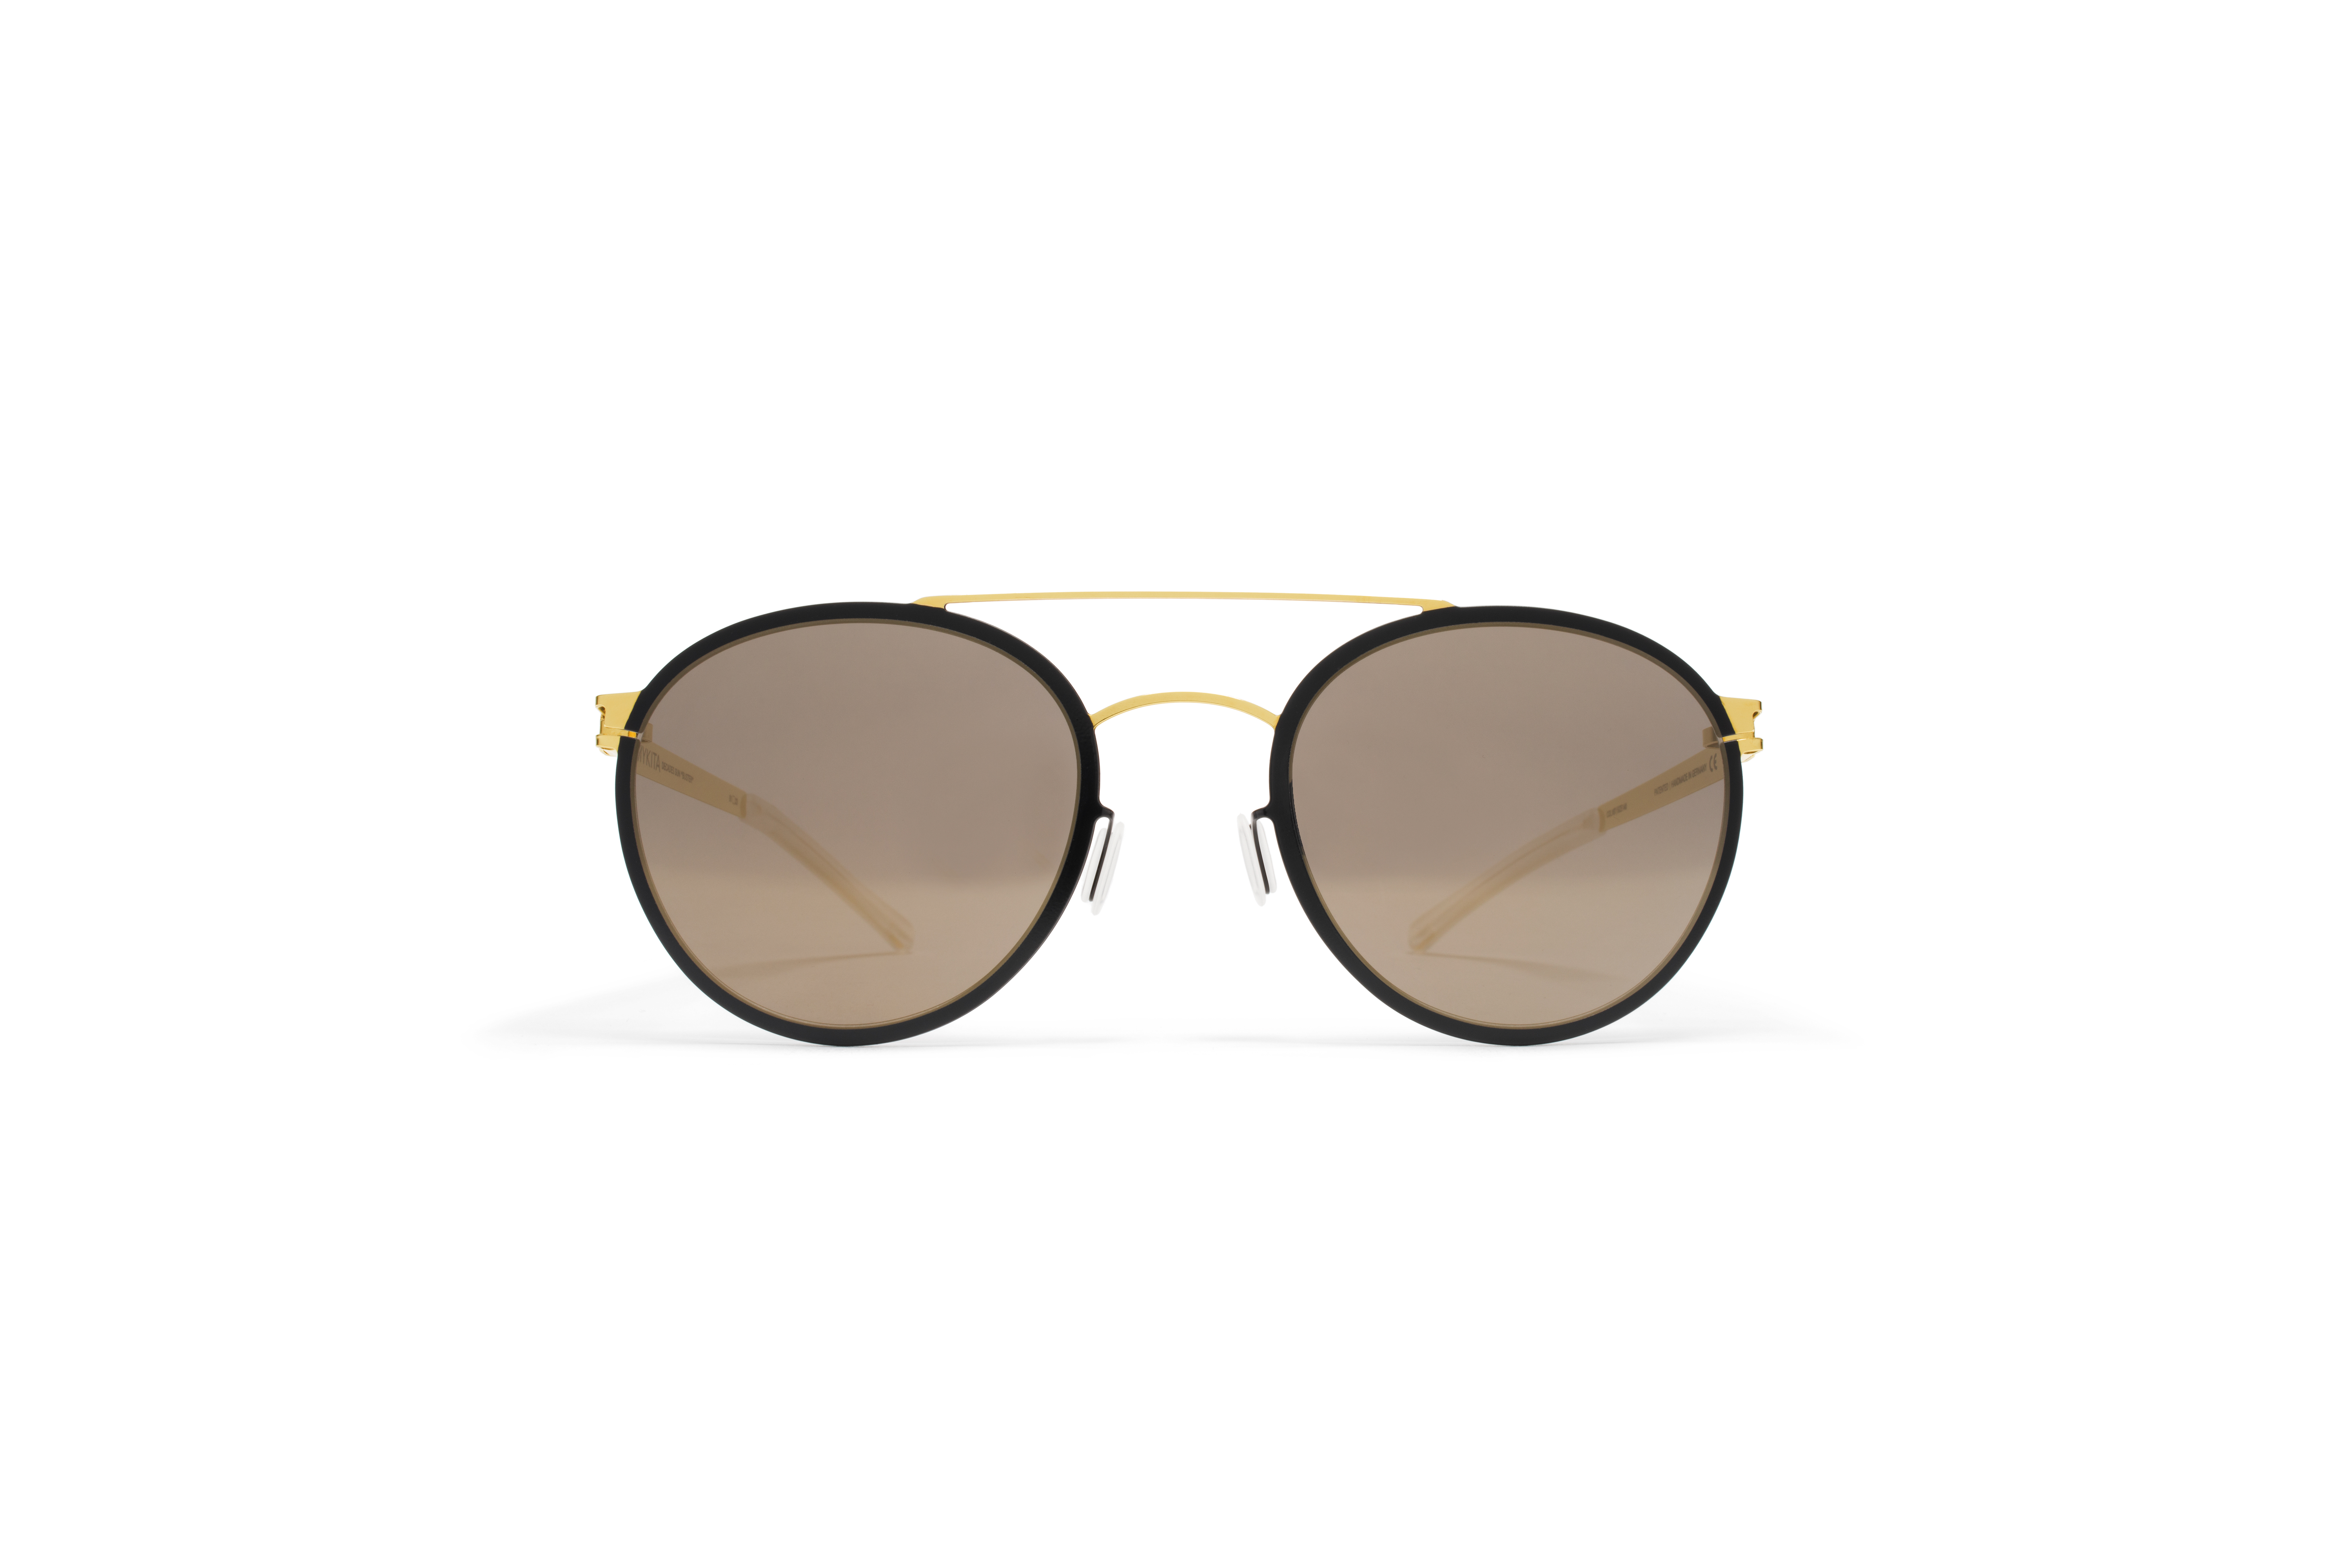 MYKITA Decades Sun Buster Gold Jetblack Brilliantg562b452fa2503